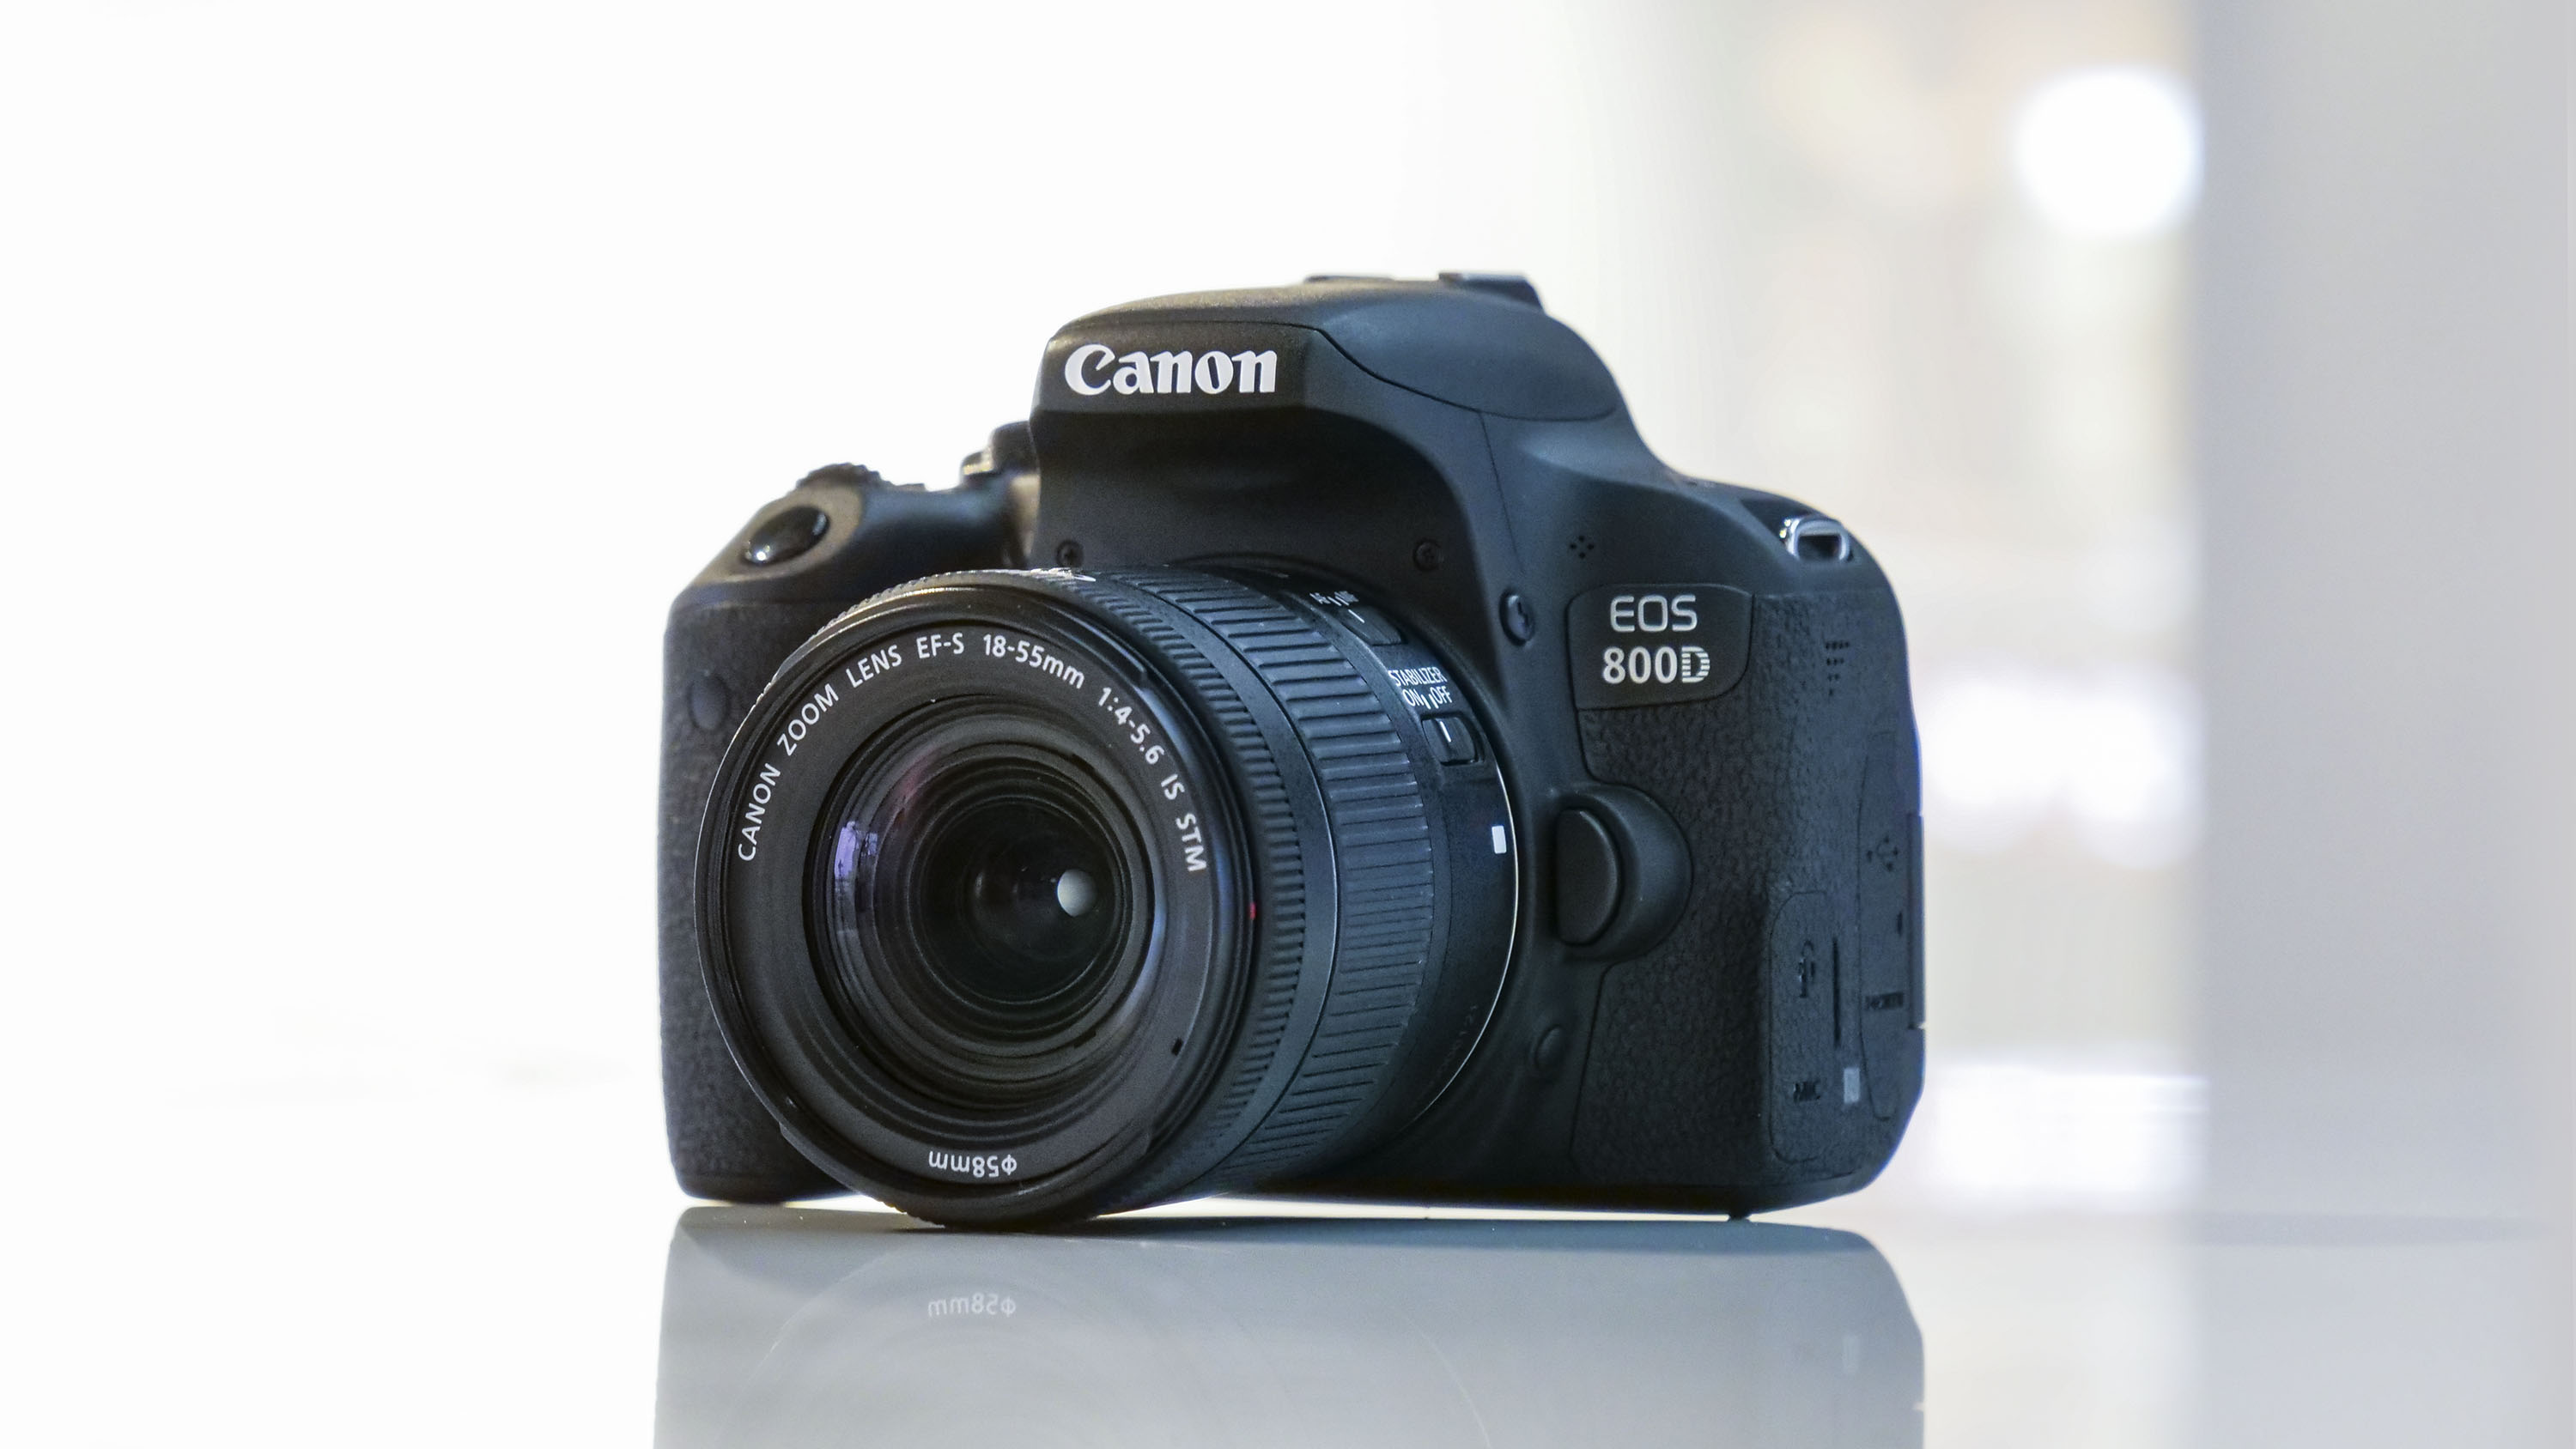 Canon Eos Rebel T7i Eos 800d Review Techradar